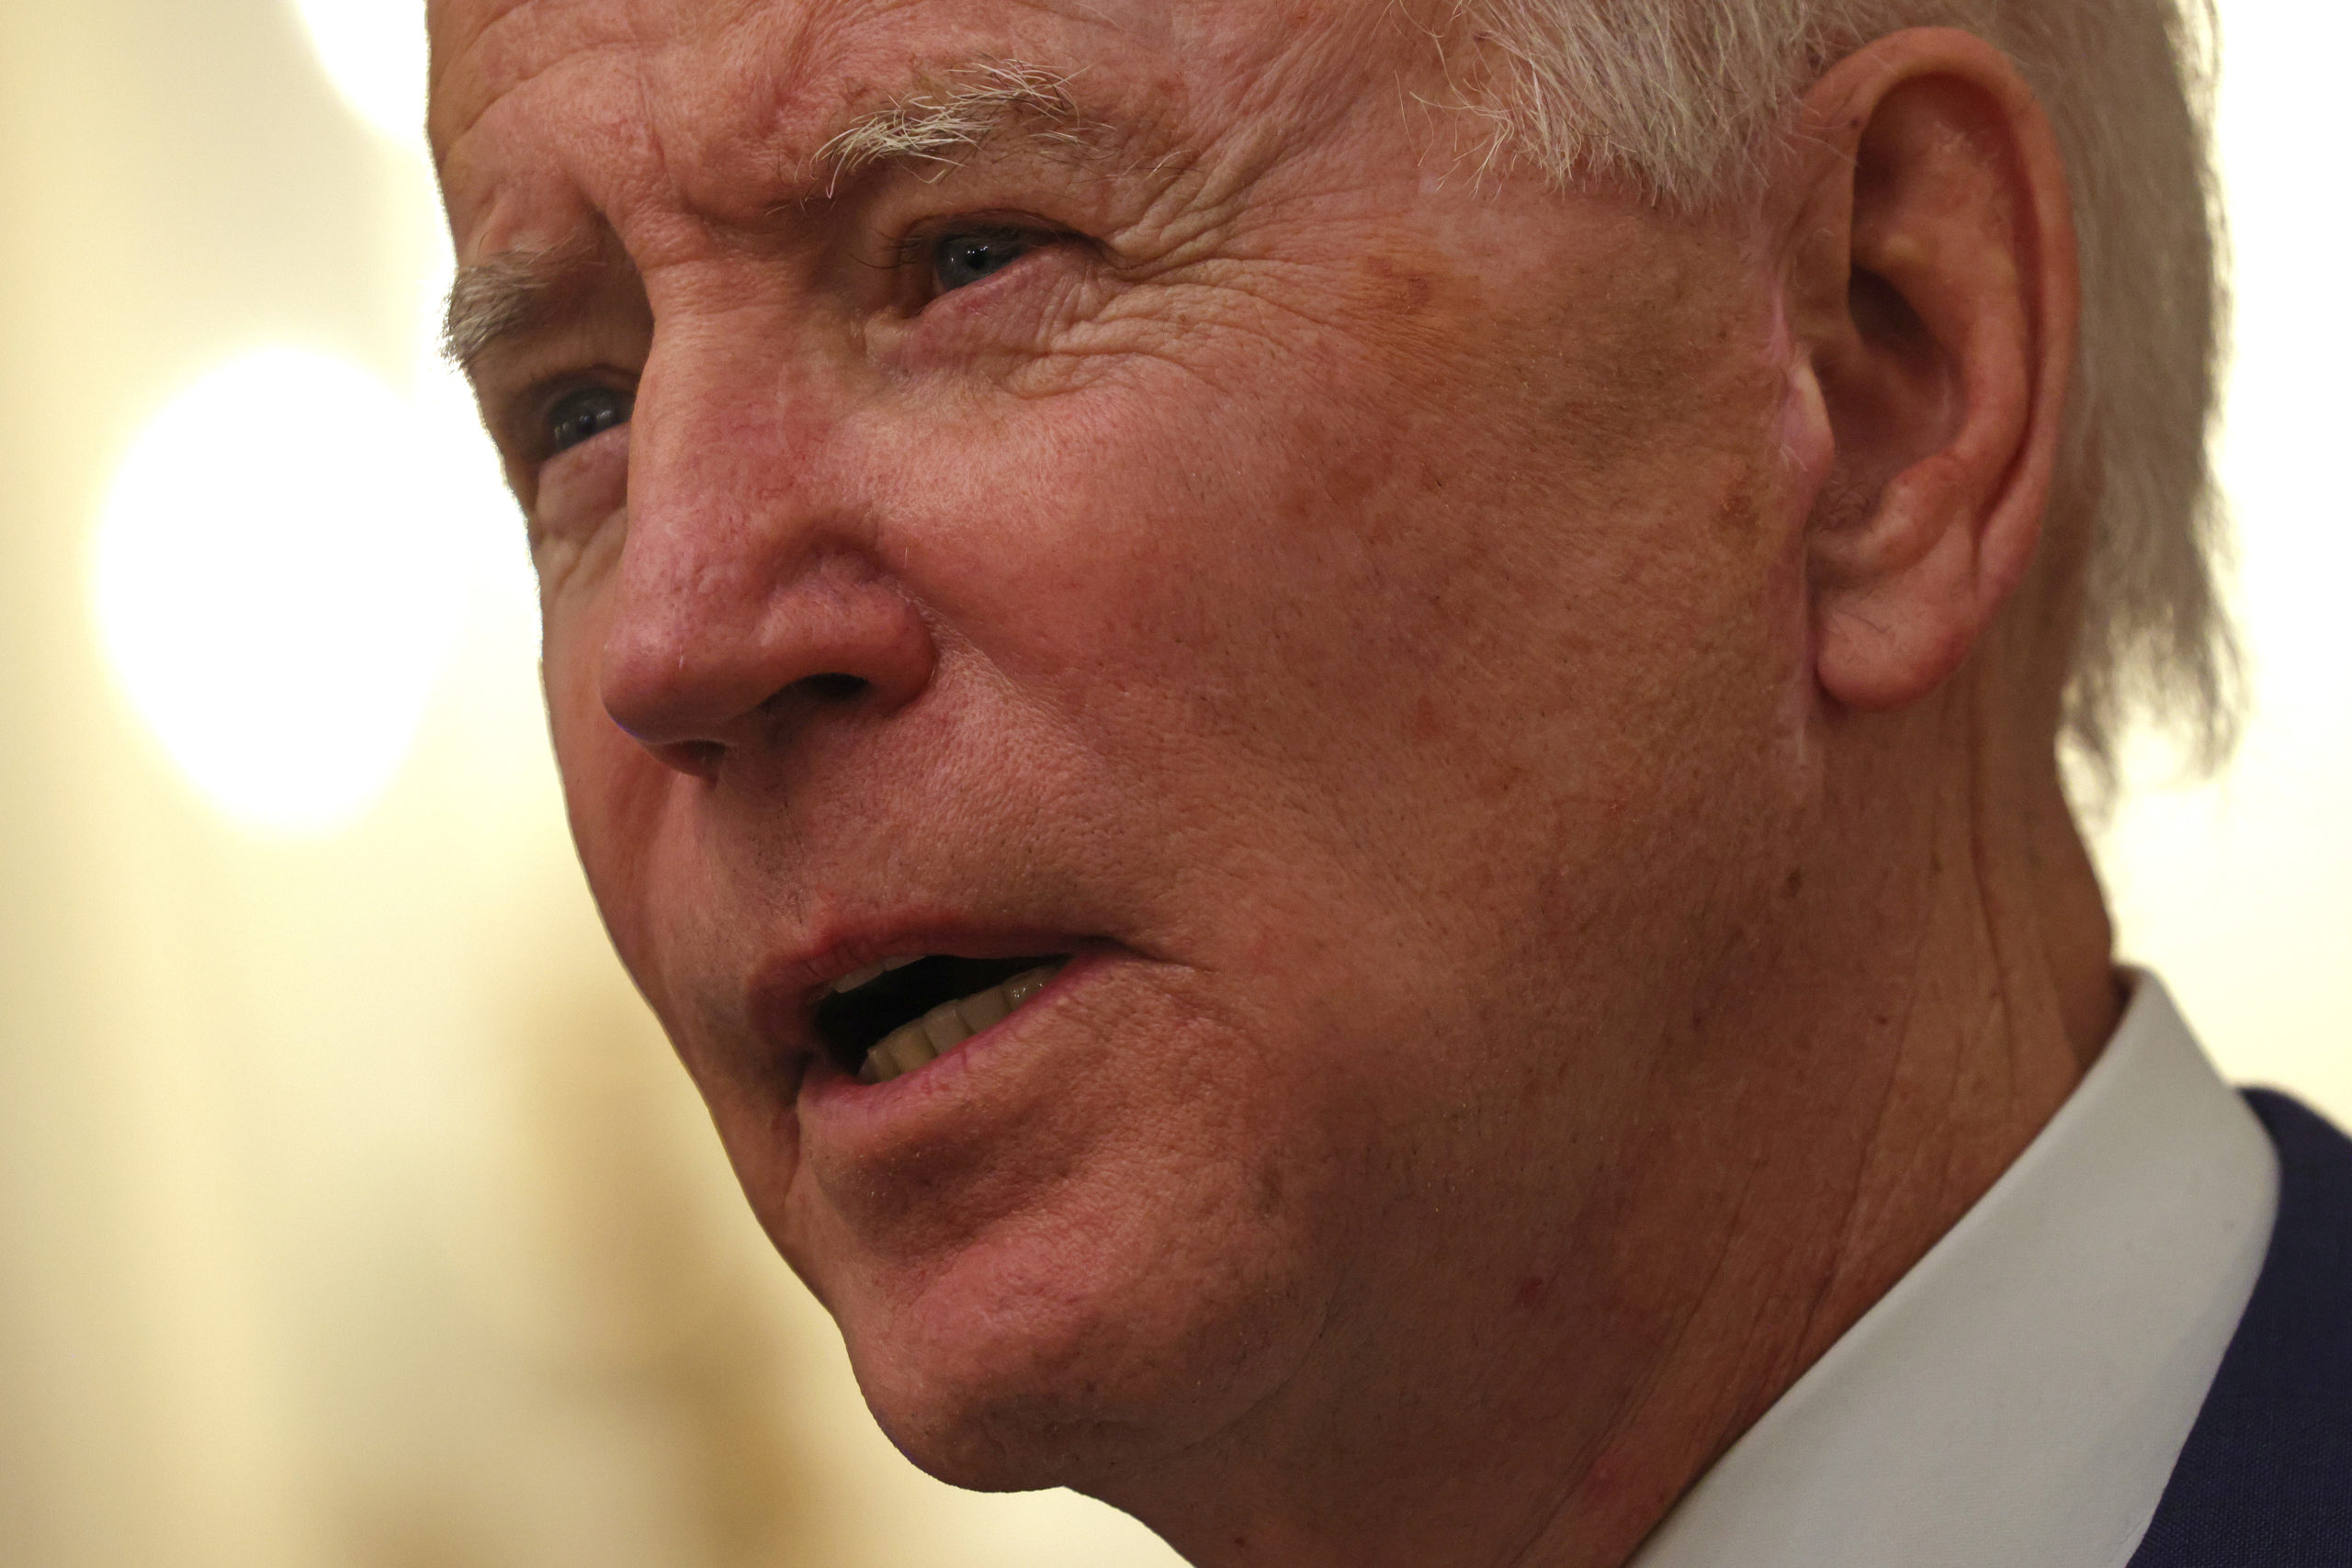 WASHINGTON, DC - JANUARY 22: U.S. President Joe Biden speaks during an event on economic crisis in the State Dining Room of the White House January 22, 2021 in Washington, DC. President Biden spoke on his administration's response to the economic crisis that caused by the COVID-19 pandemic and signed two executive orders. (Photo by Alex Wong/Getty Images)